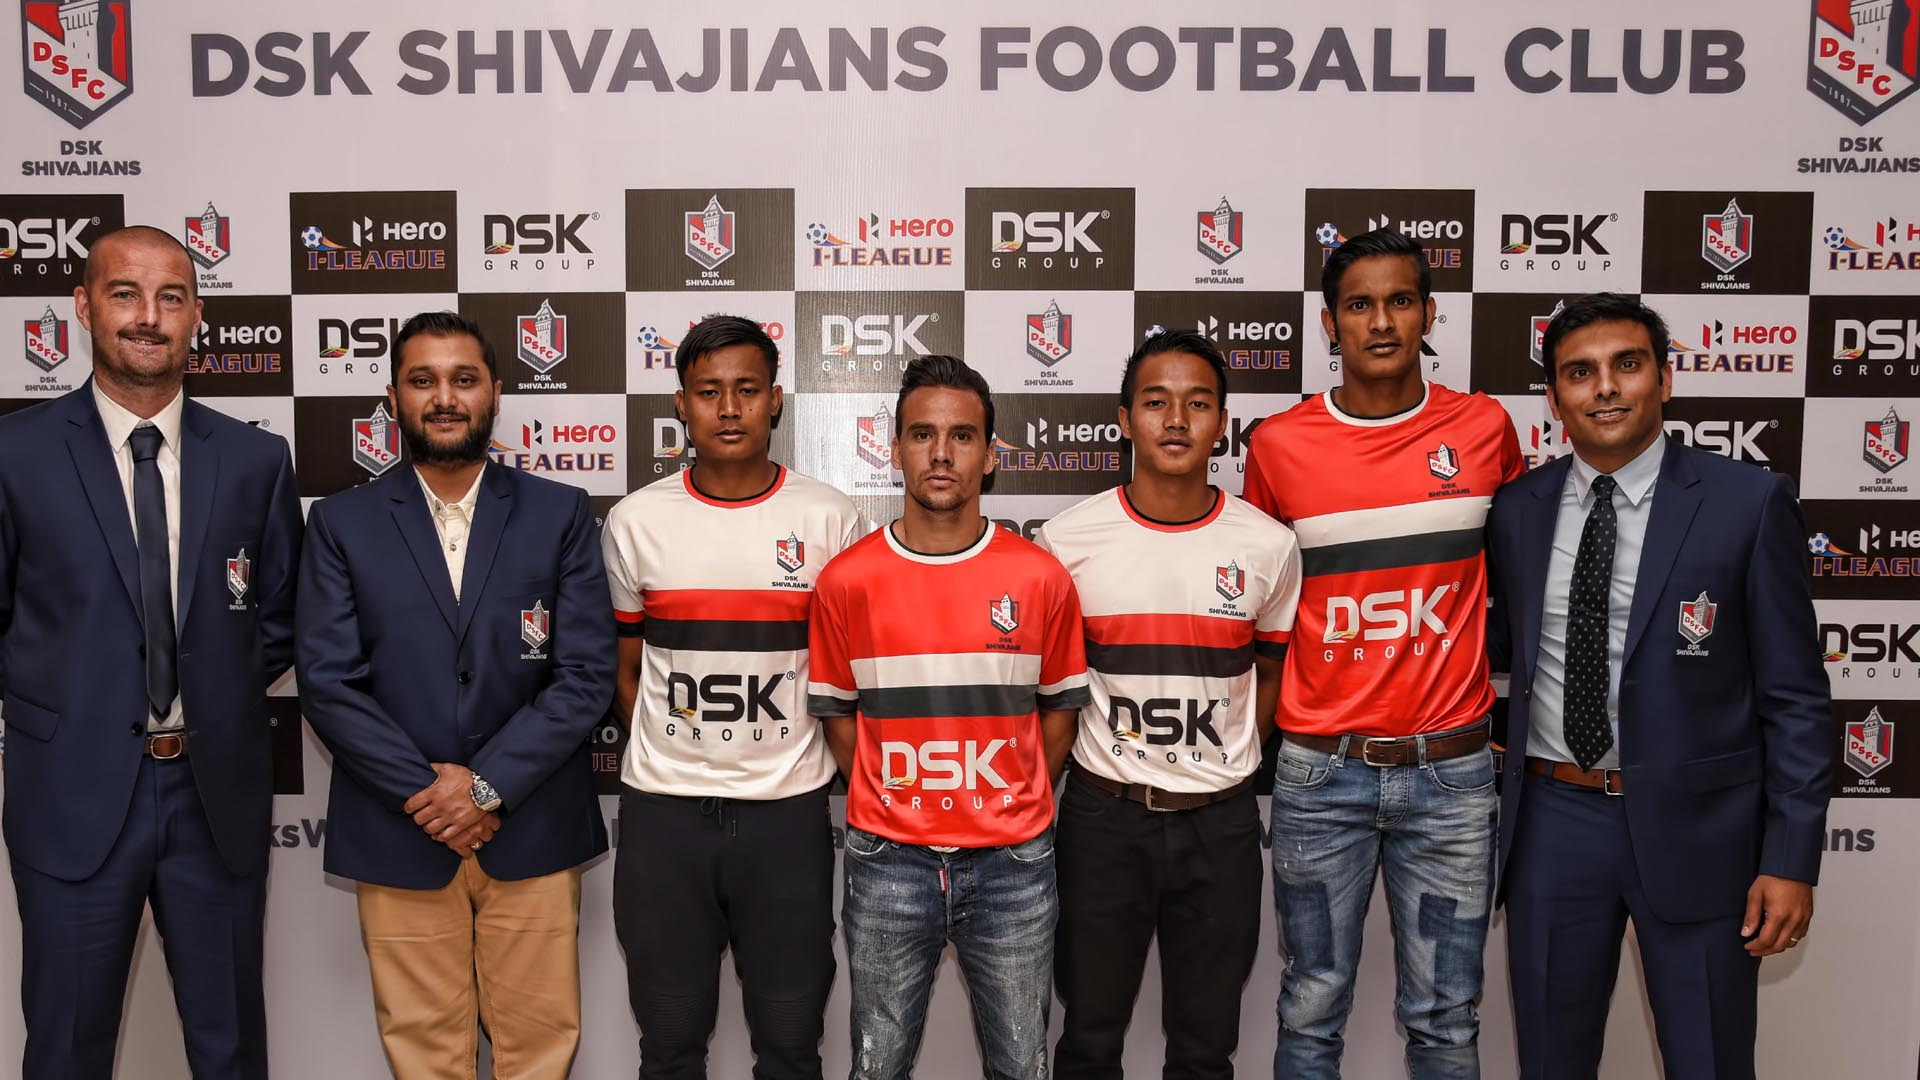 DSK Shivajians FC Press Conference